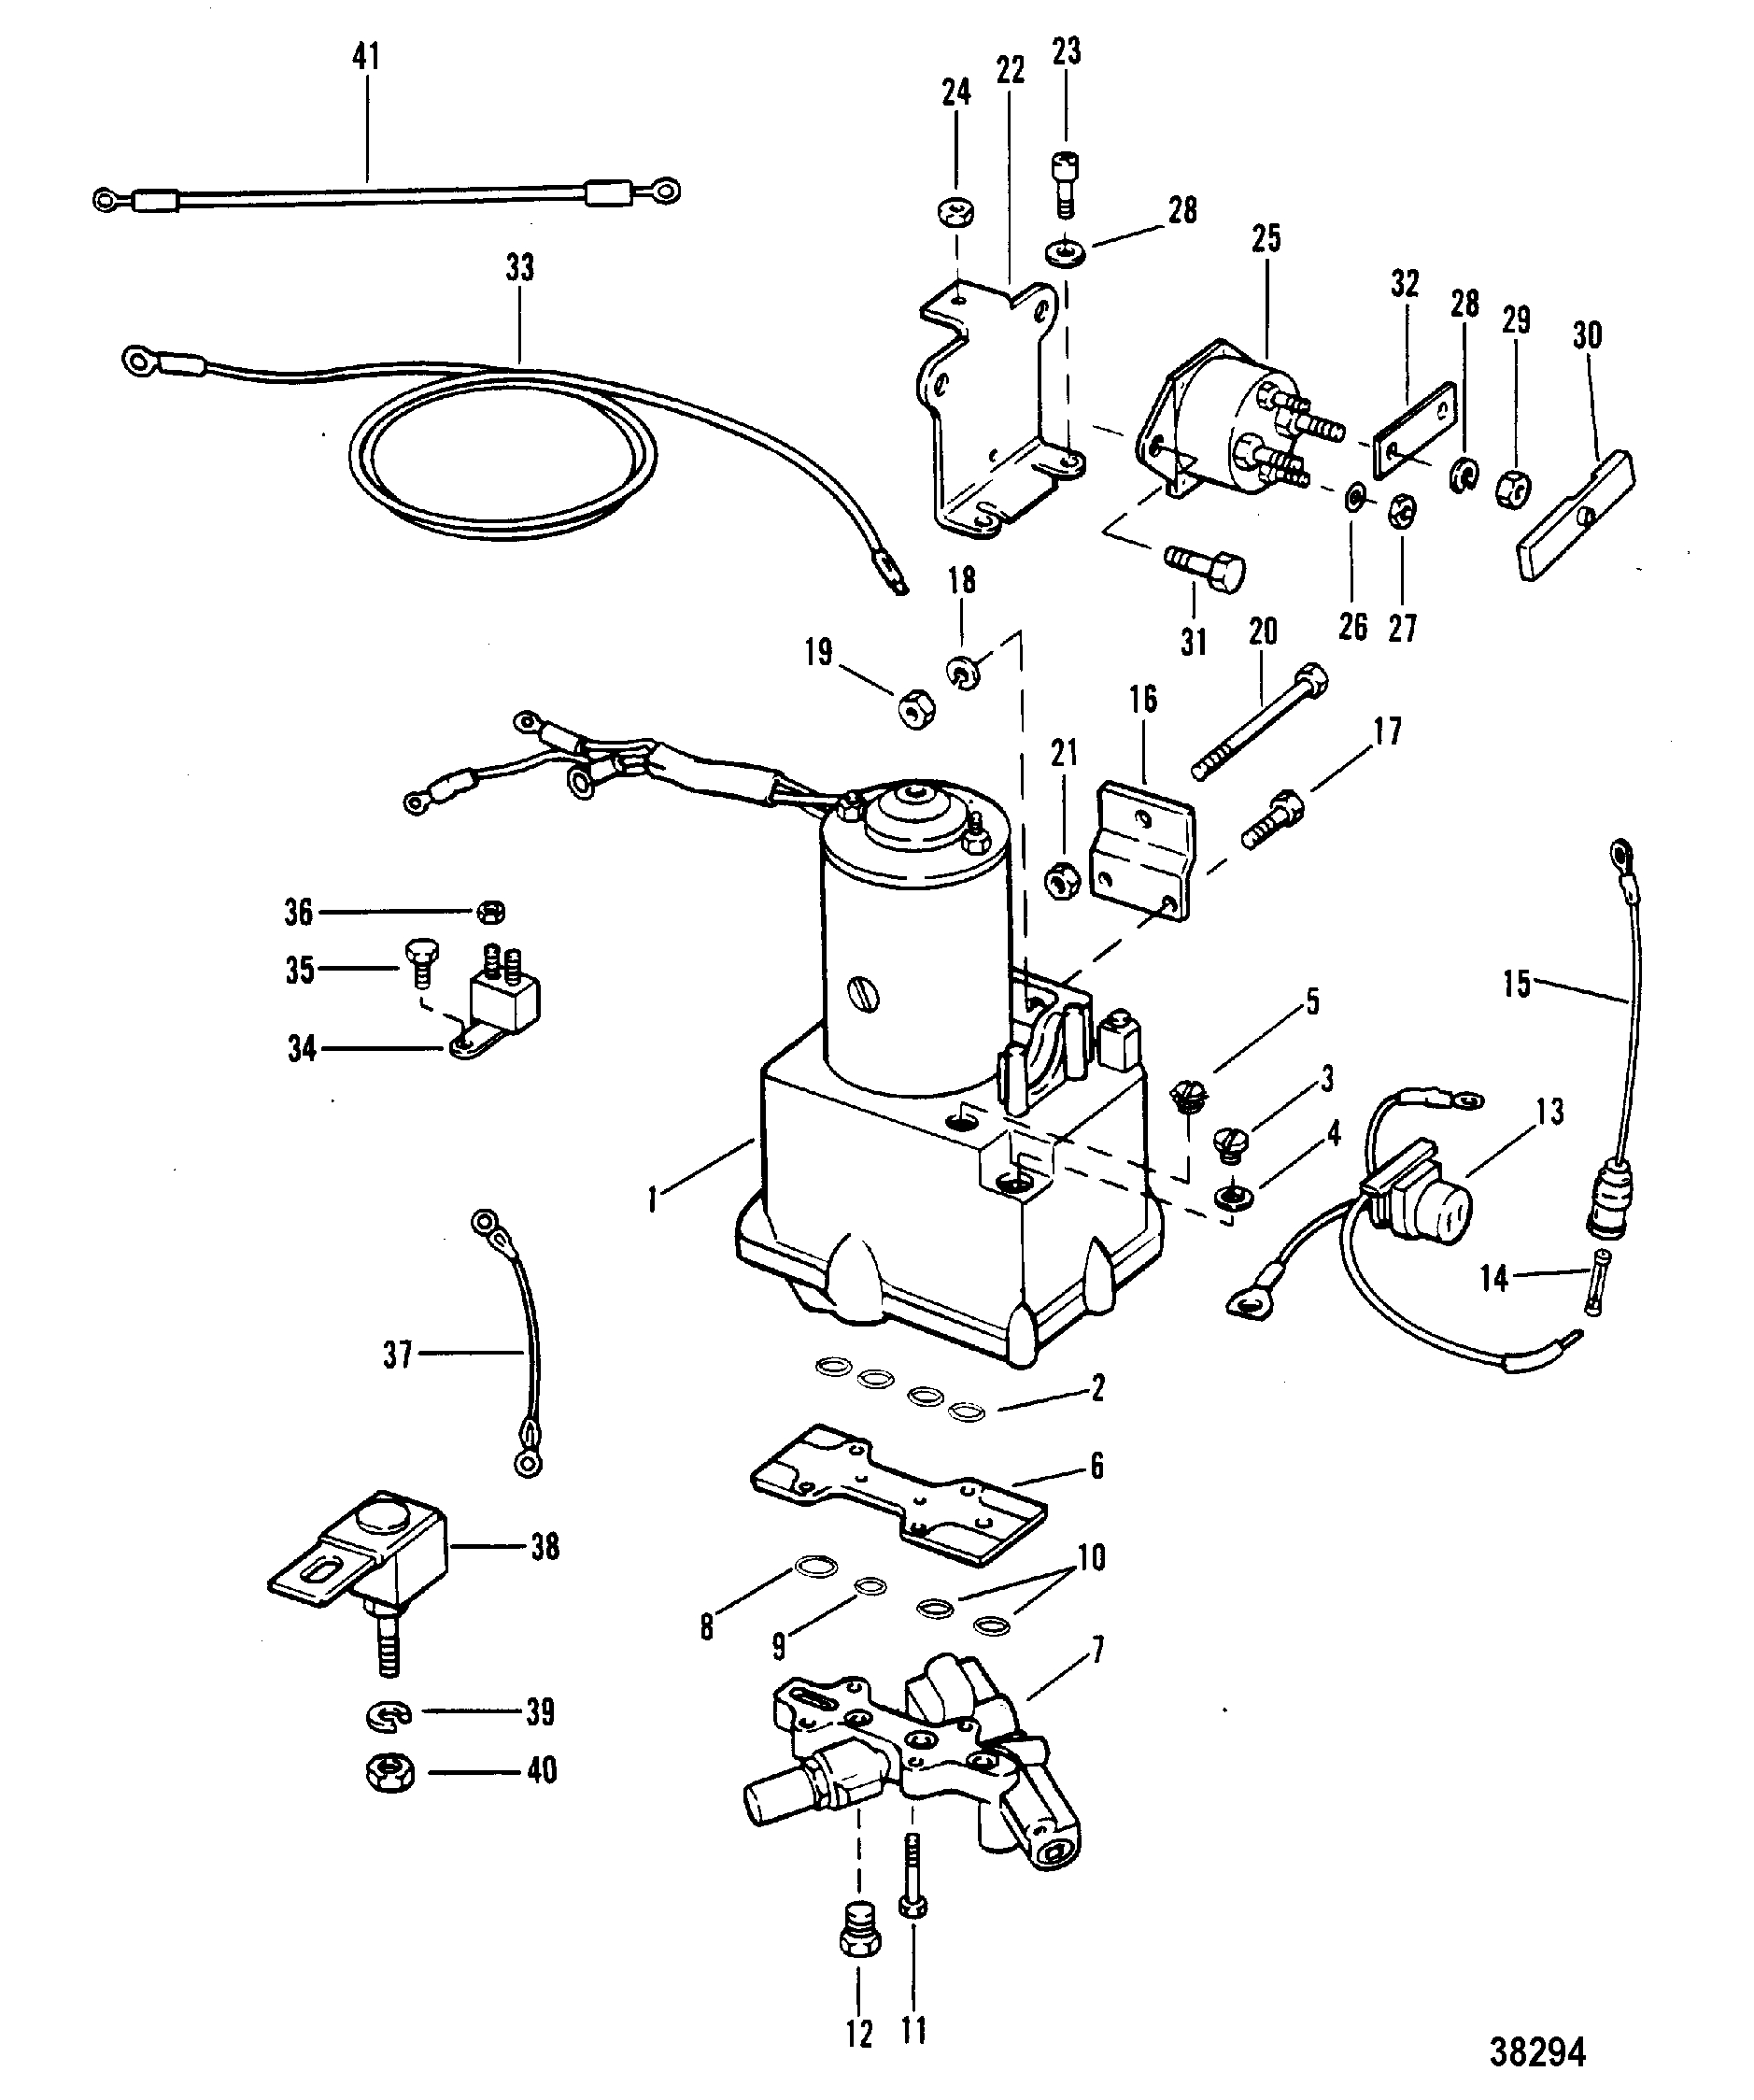 Gallery Of Mercury Trim Motor Wiring Diagram Sample